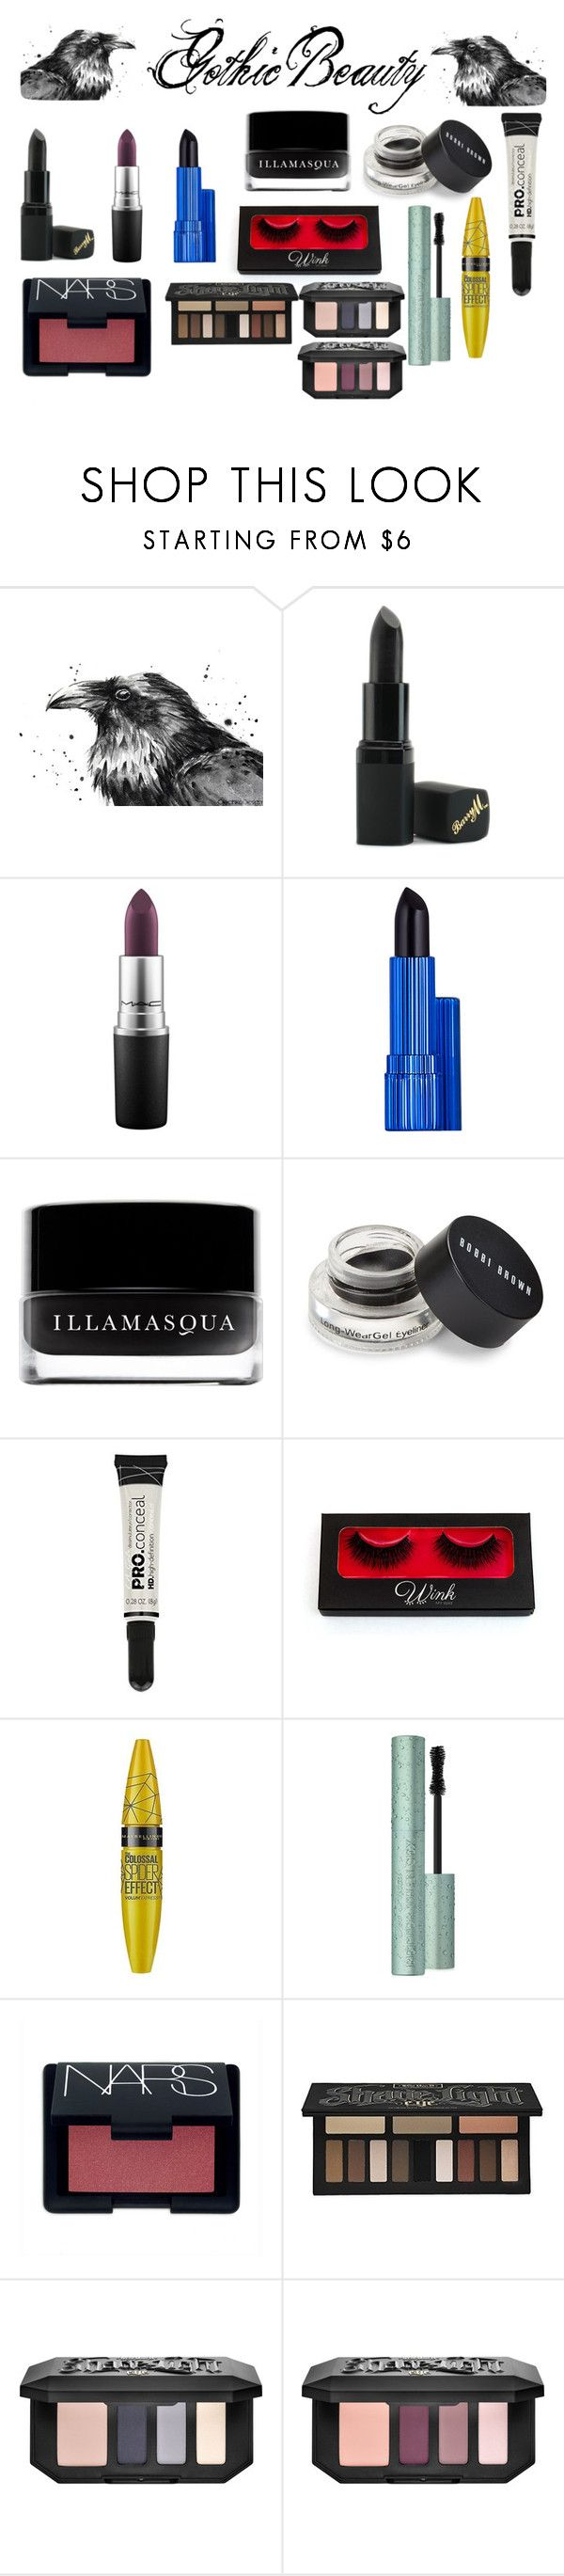 """""""Gothic Beauty Vol:1"""" by jessieholloway13 ❤ liked on Polyvore featuring beauty, Barry M, MAC Cosmetics, Estée Lauder, Illamasqua, Bobbi Brown Cosmetics, Maybelline, Too Faced Cosmetics, NARS Cosmetics and Kat Von D"""